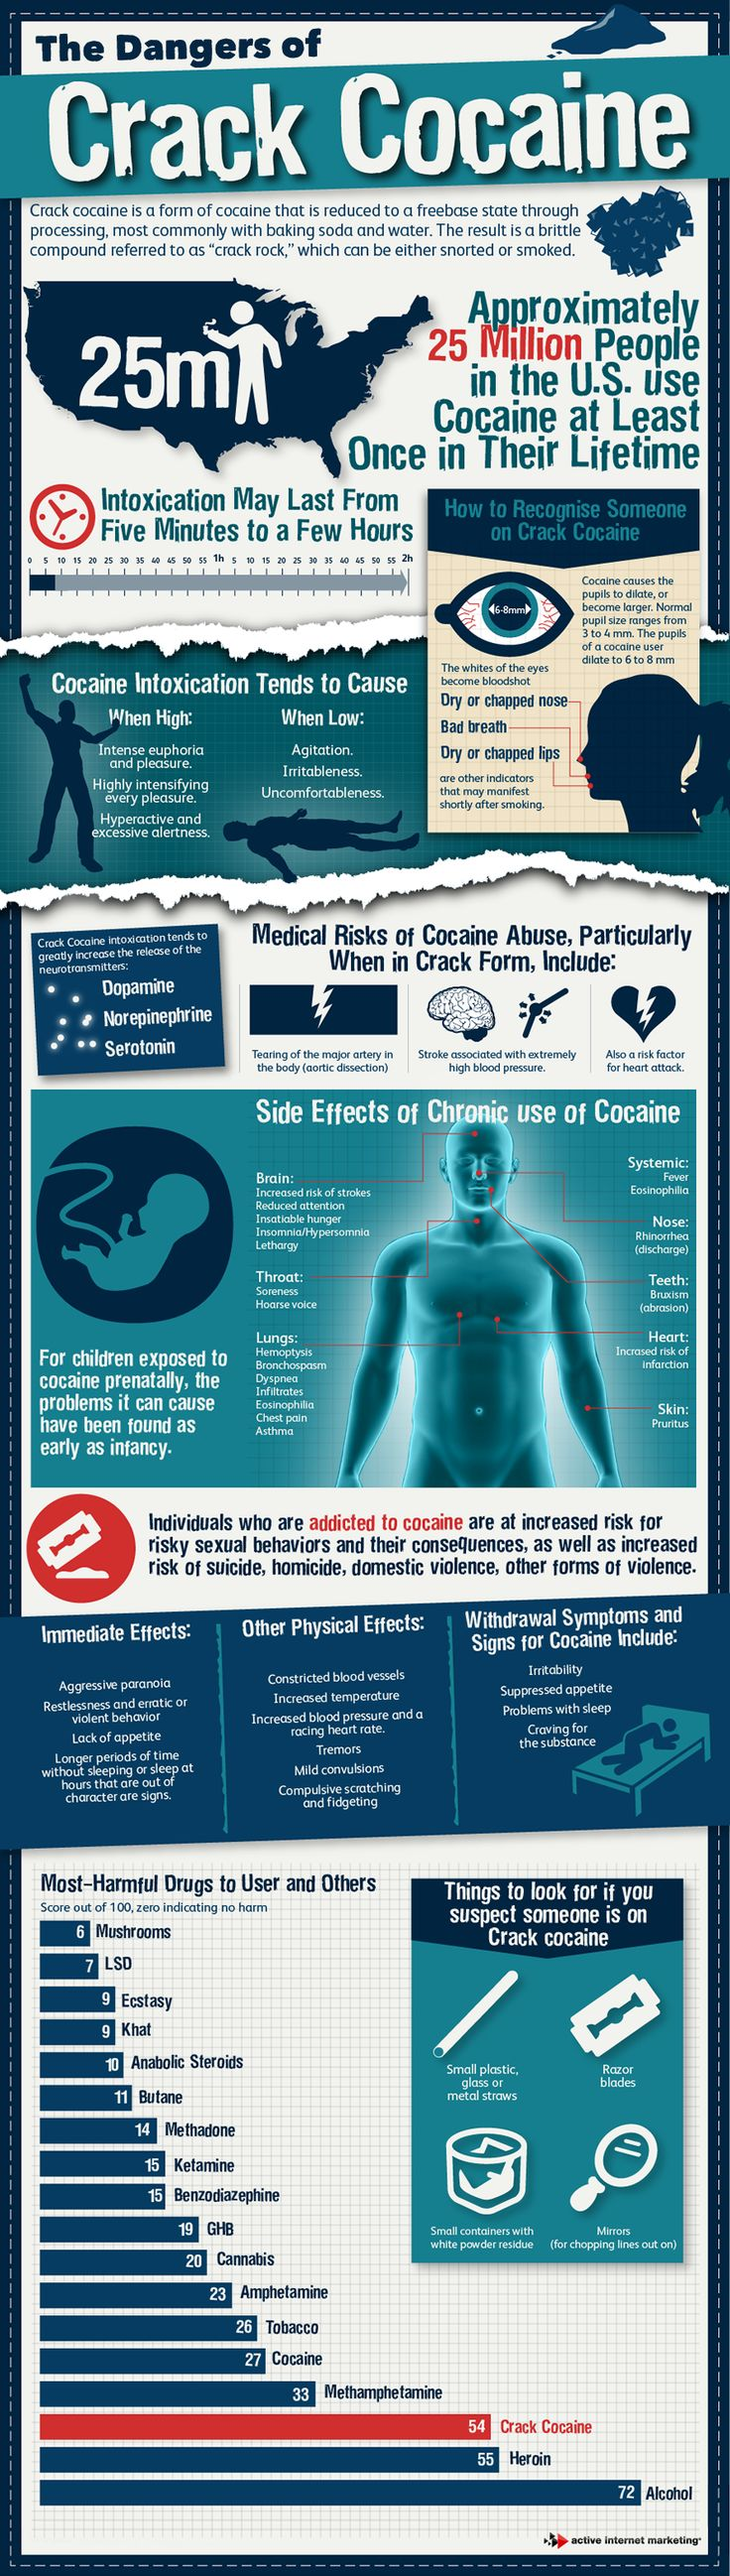 The Dangers of Crack Cocaine - The stats and side-effects of the drug. #drug #infographic - Learn more at the source!